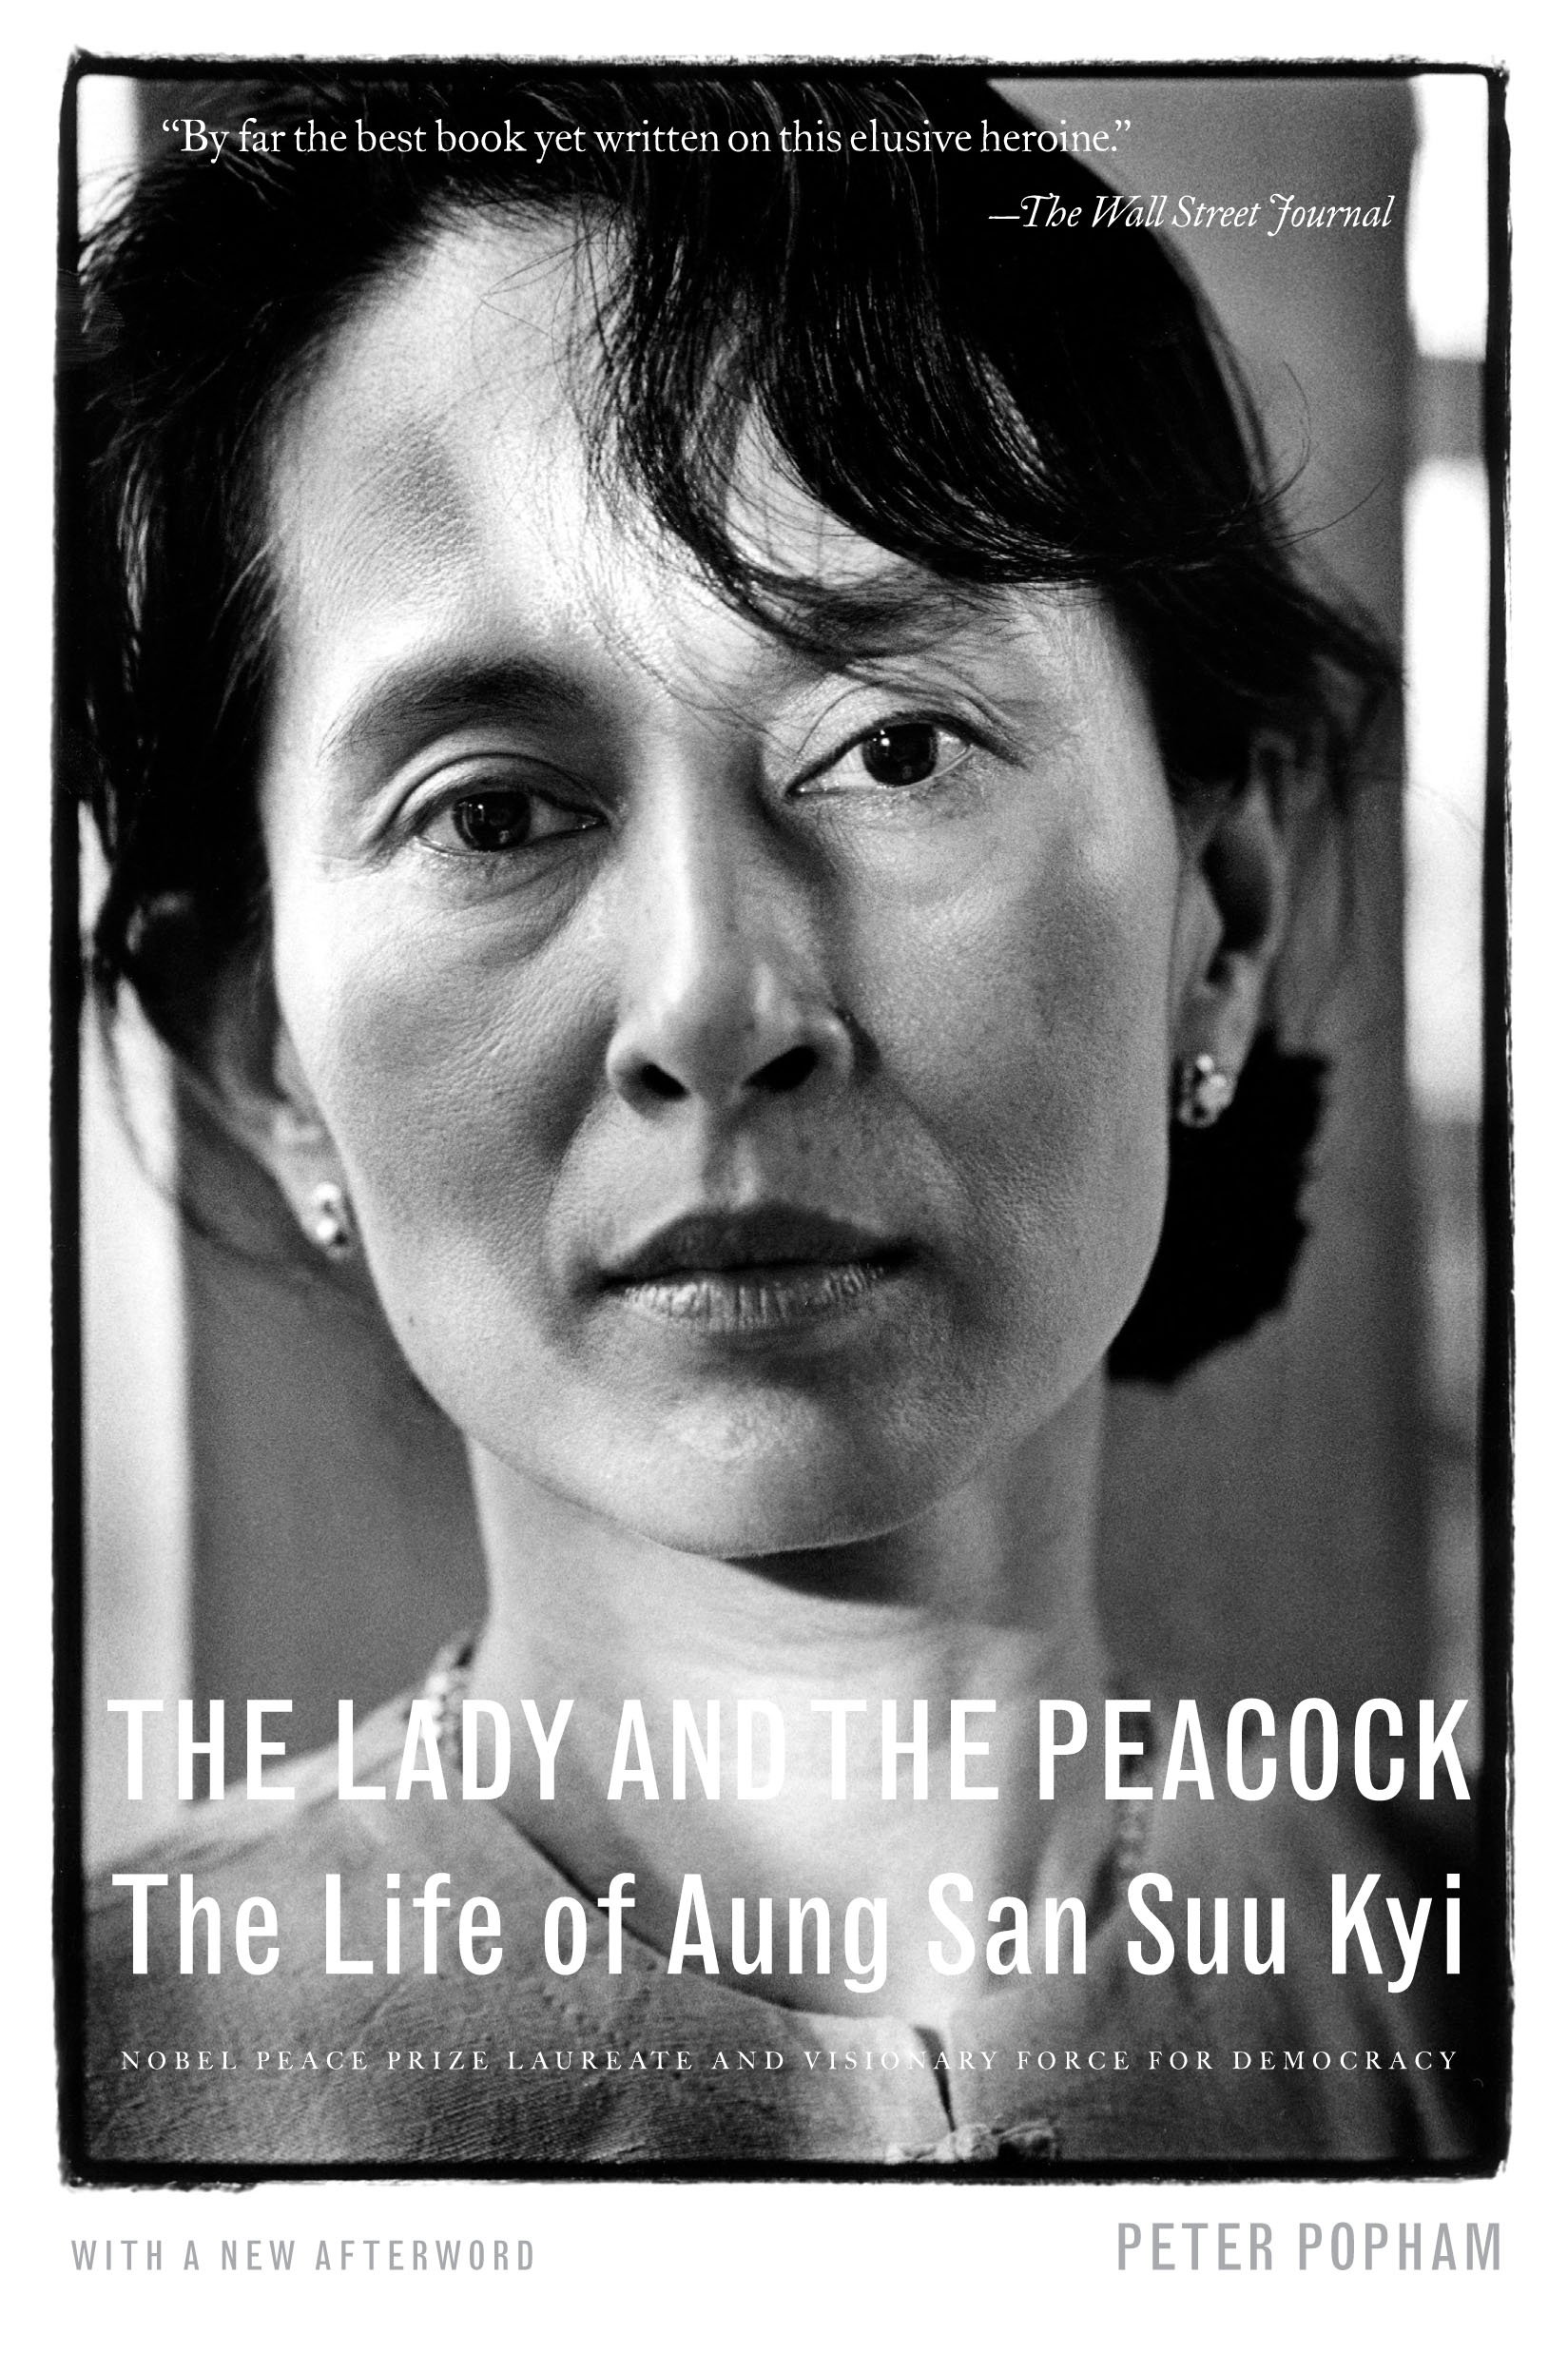 Best biography of aung san suu kyi